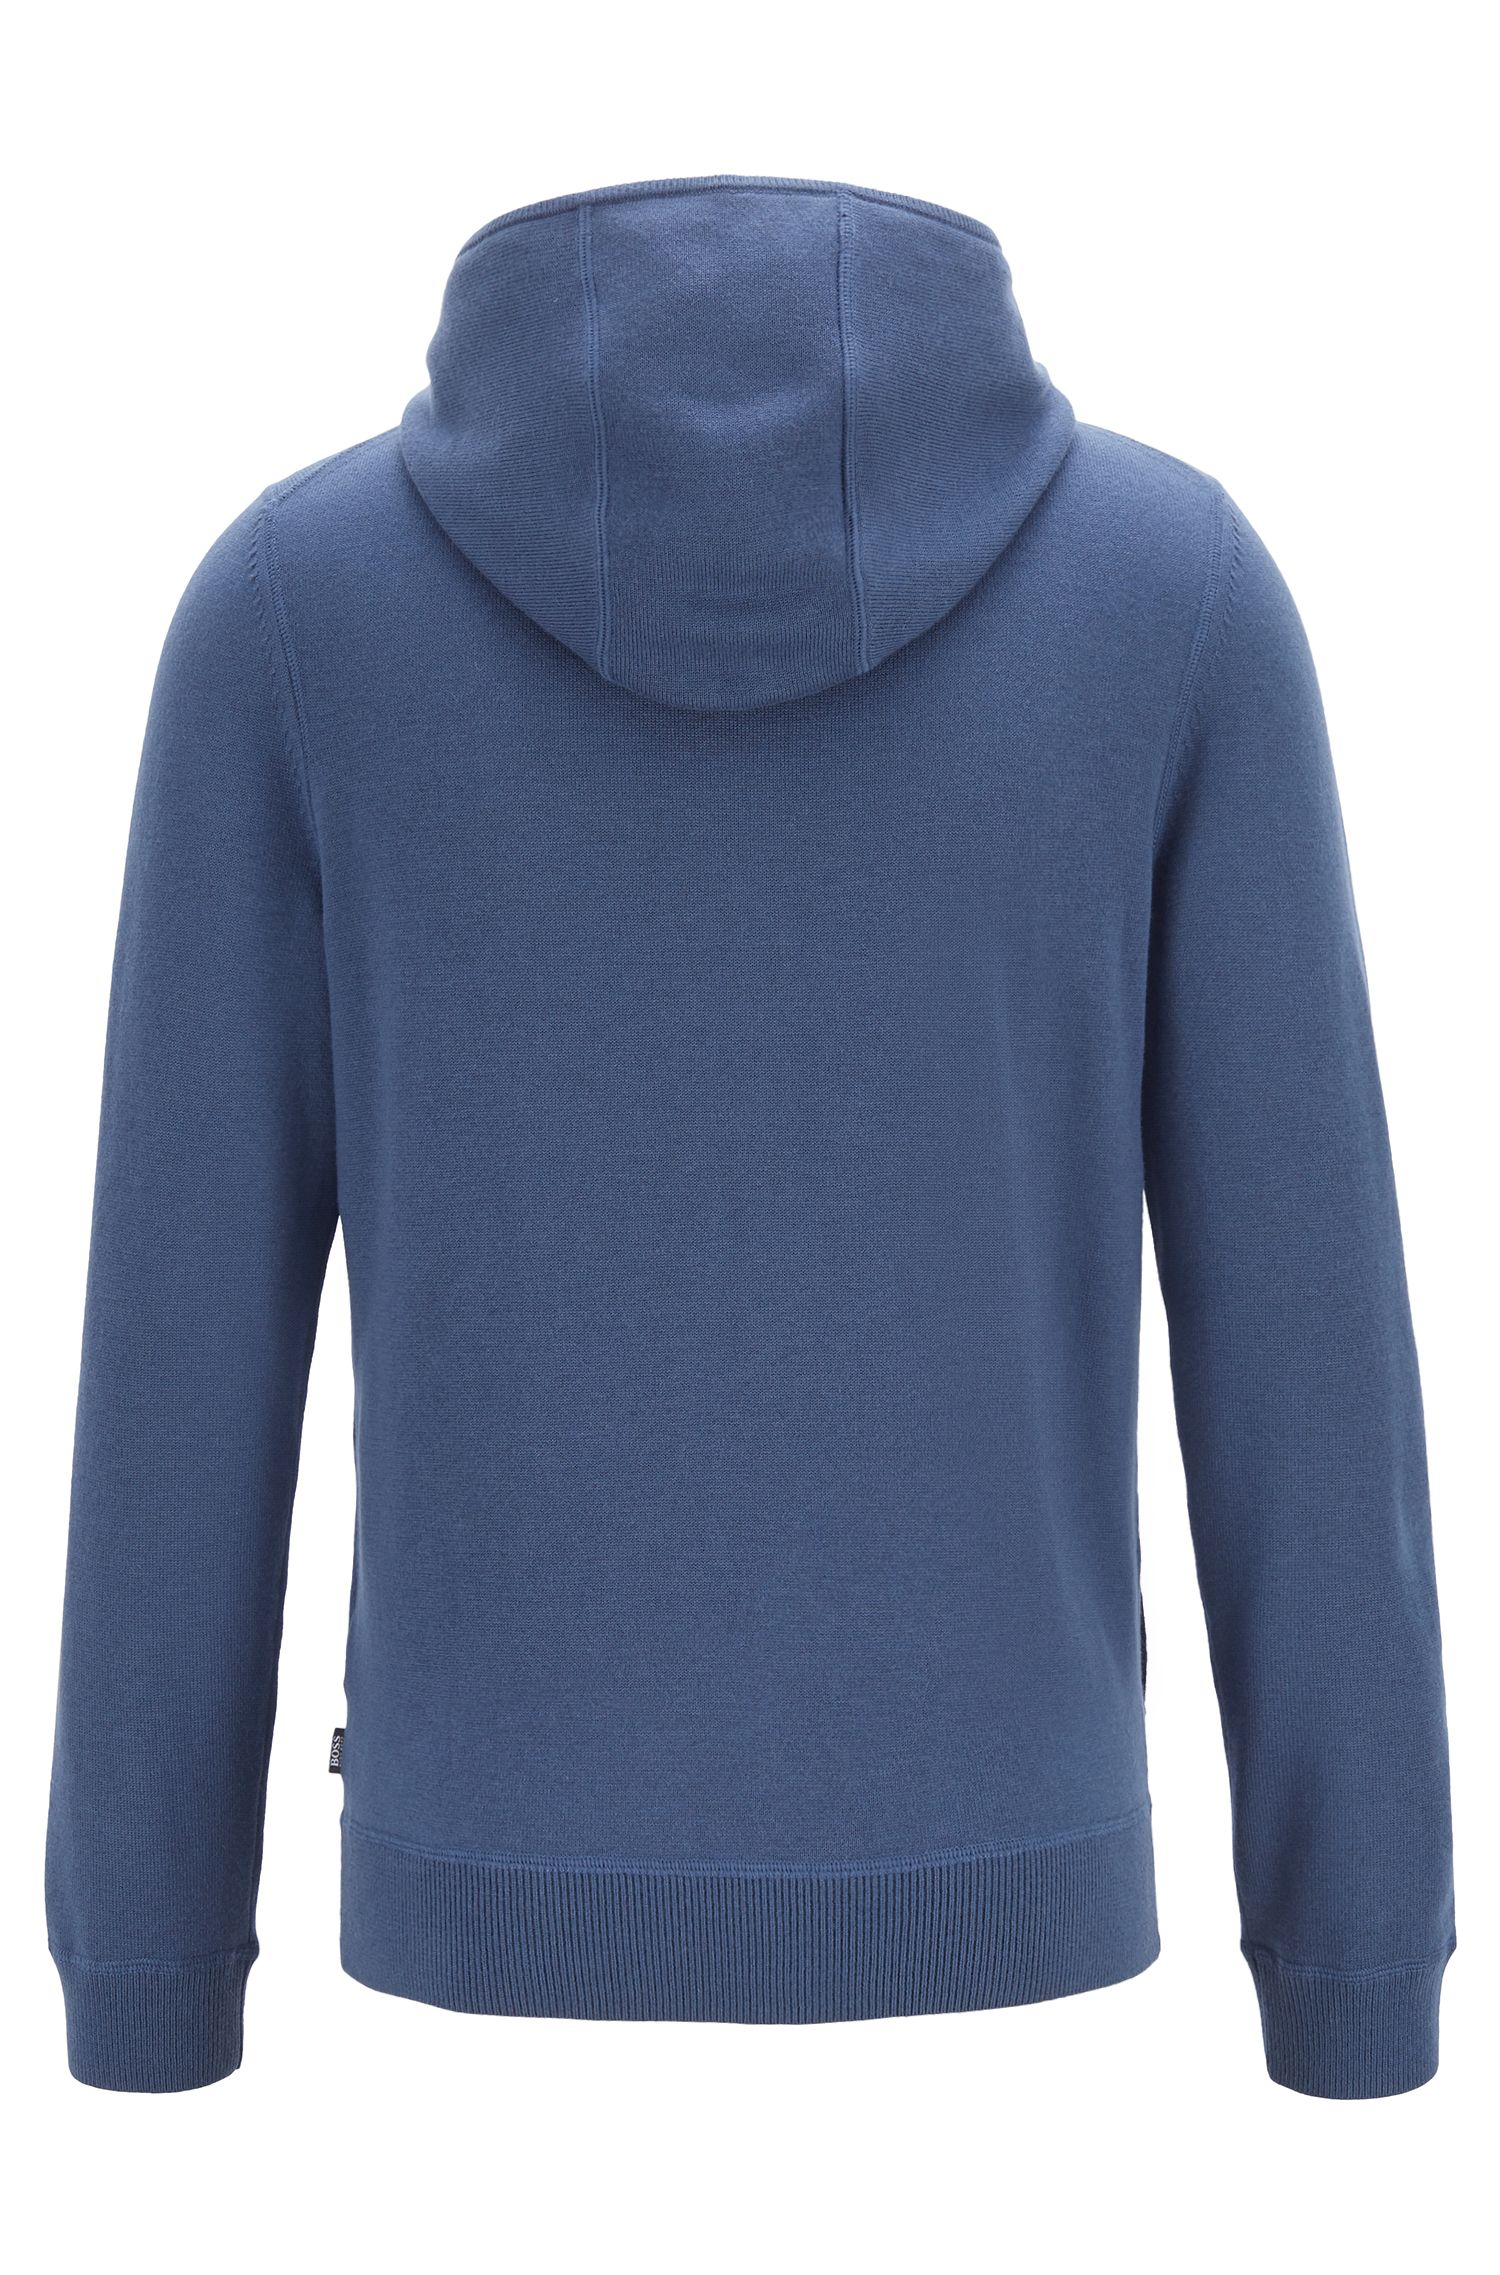 Zippered hoodie in wool, cotton, and cashmere, Open Blue